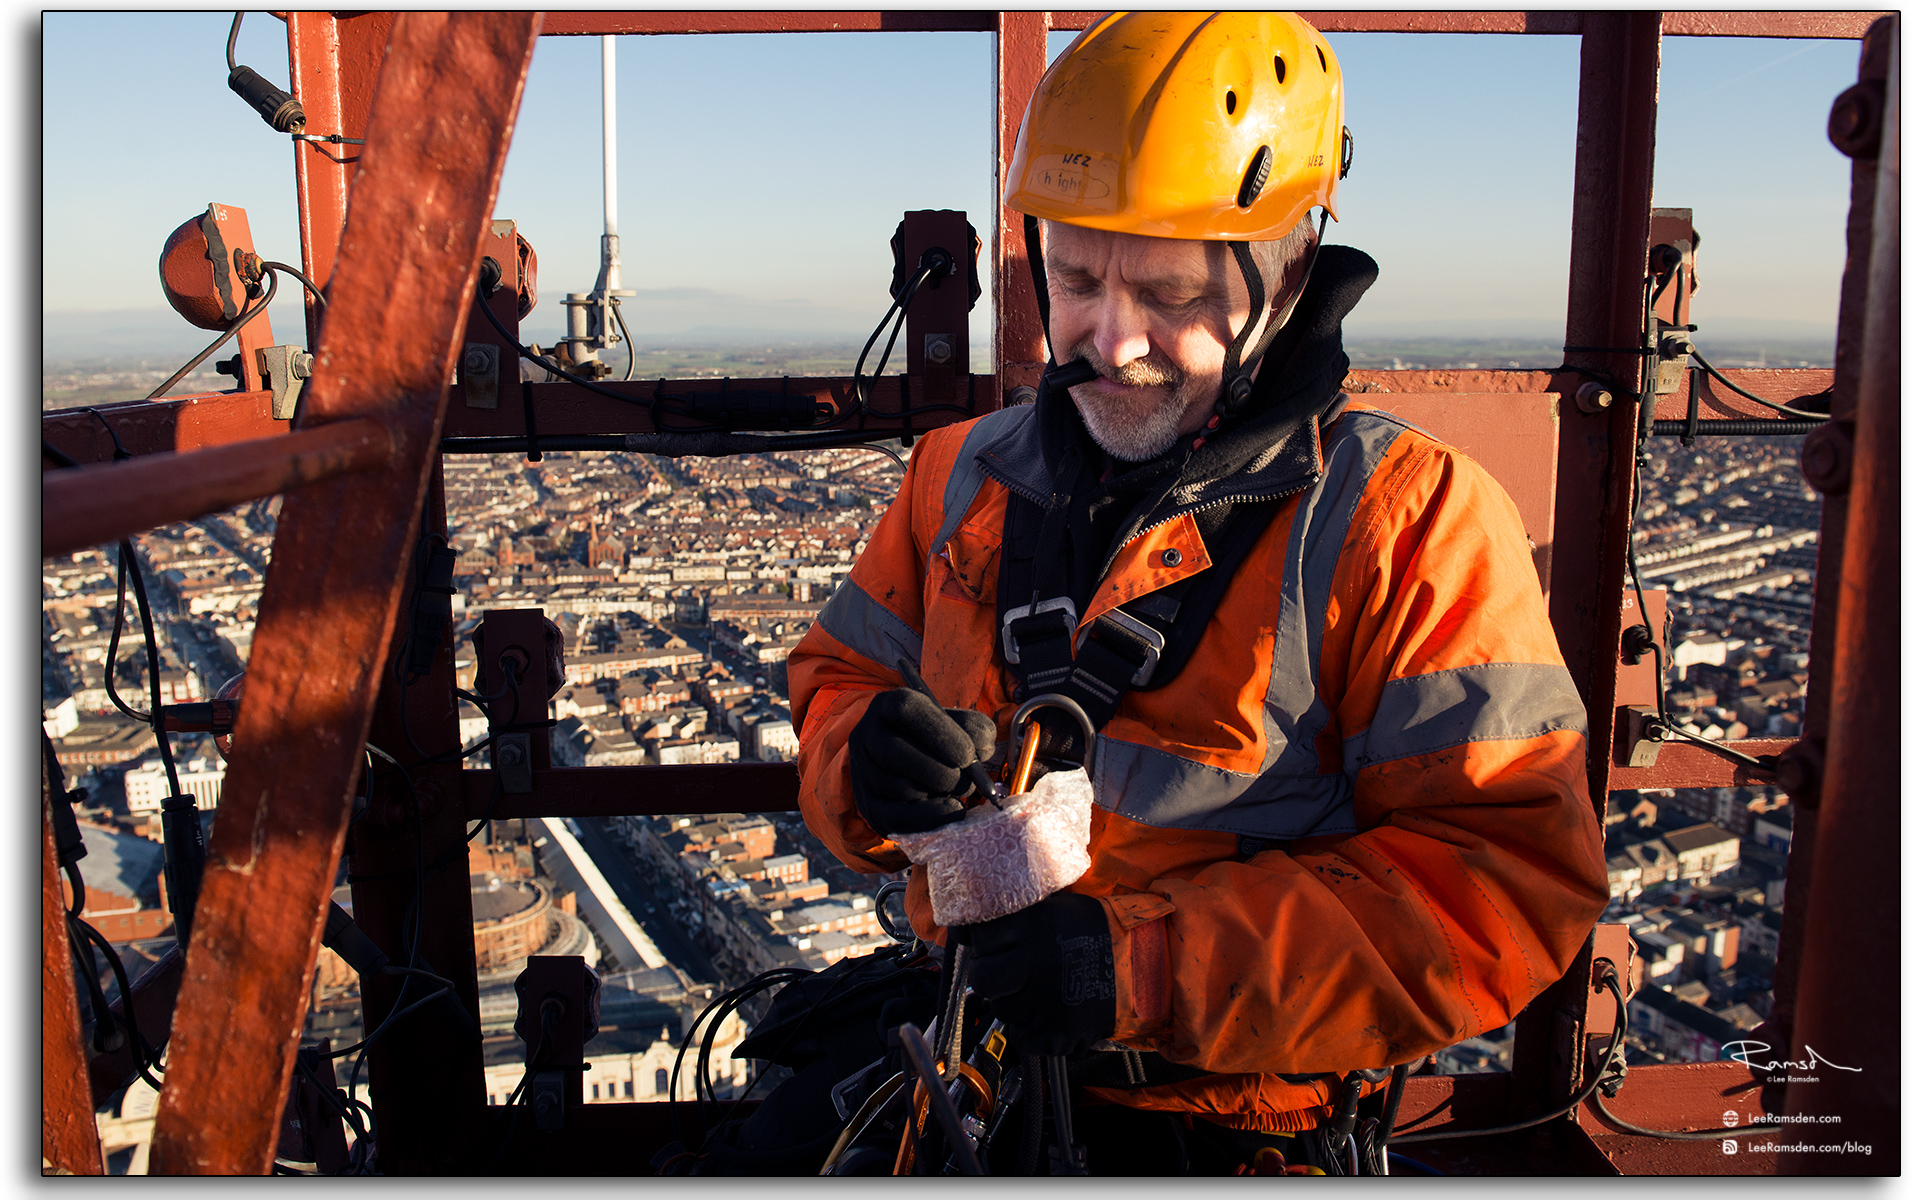 08 Wesley Berry Wez top of Blackpool Tower changing the light bulbs IRATA rope access photography by Lee Ramsden